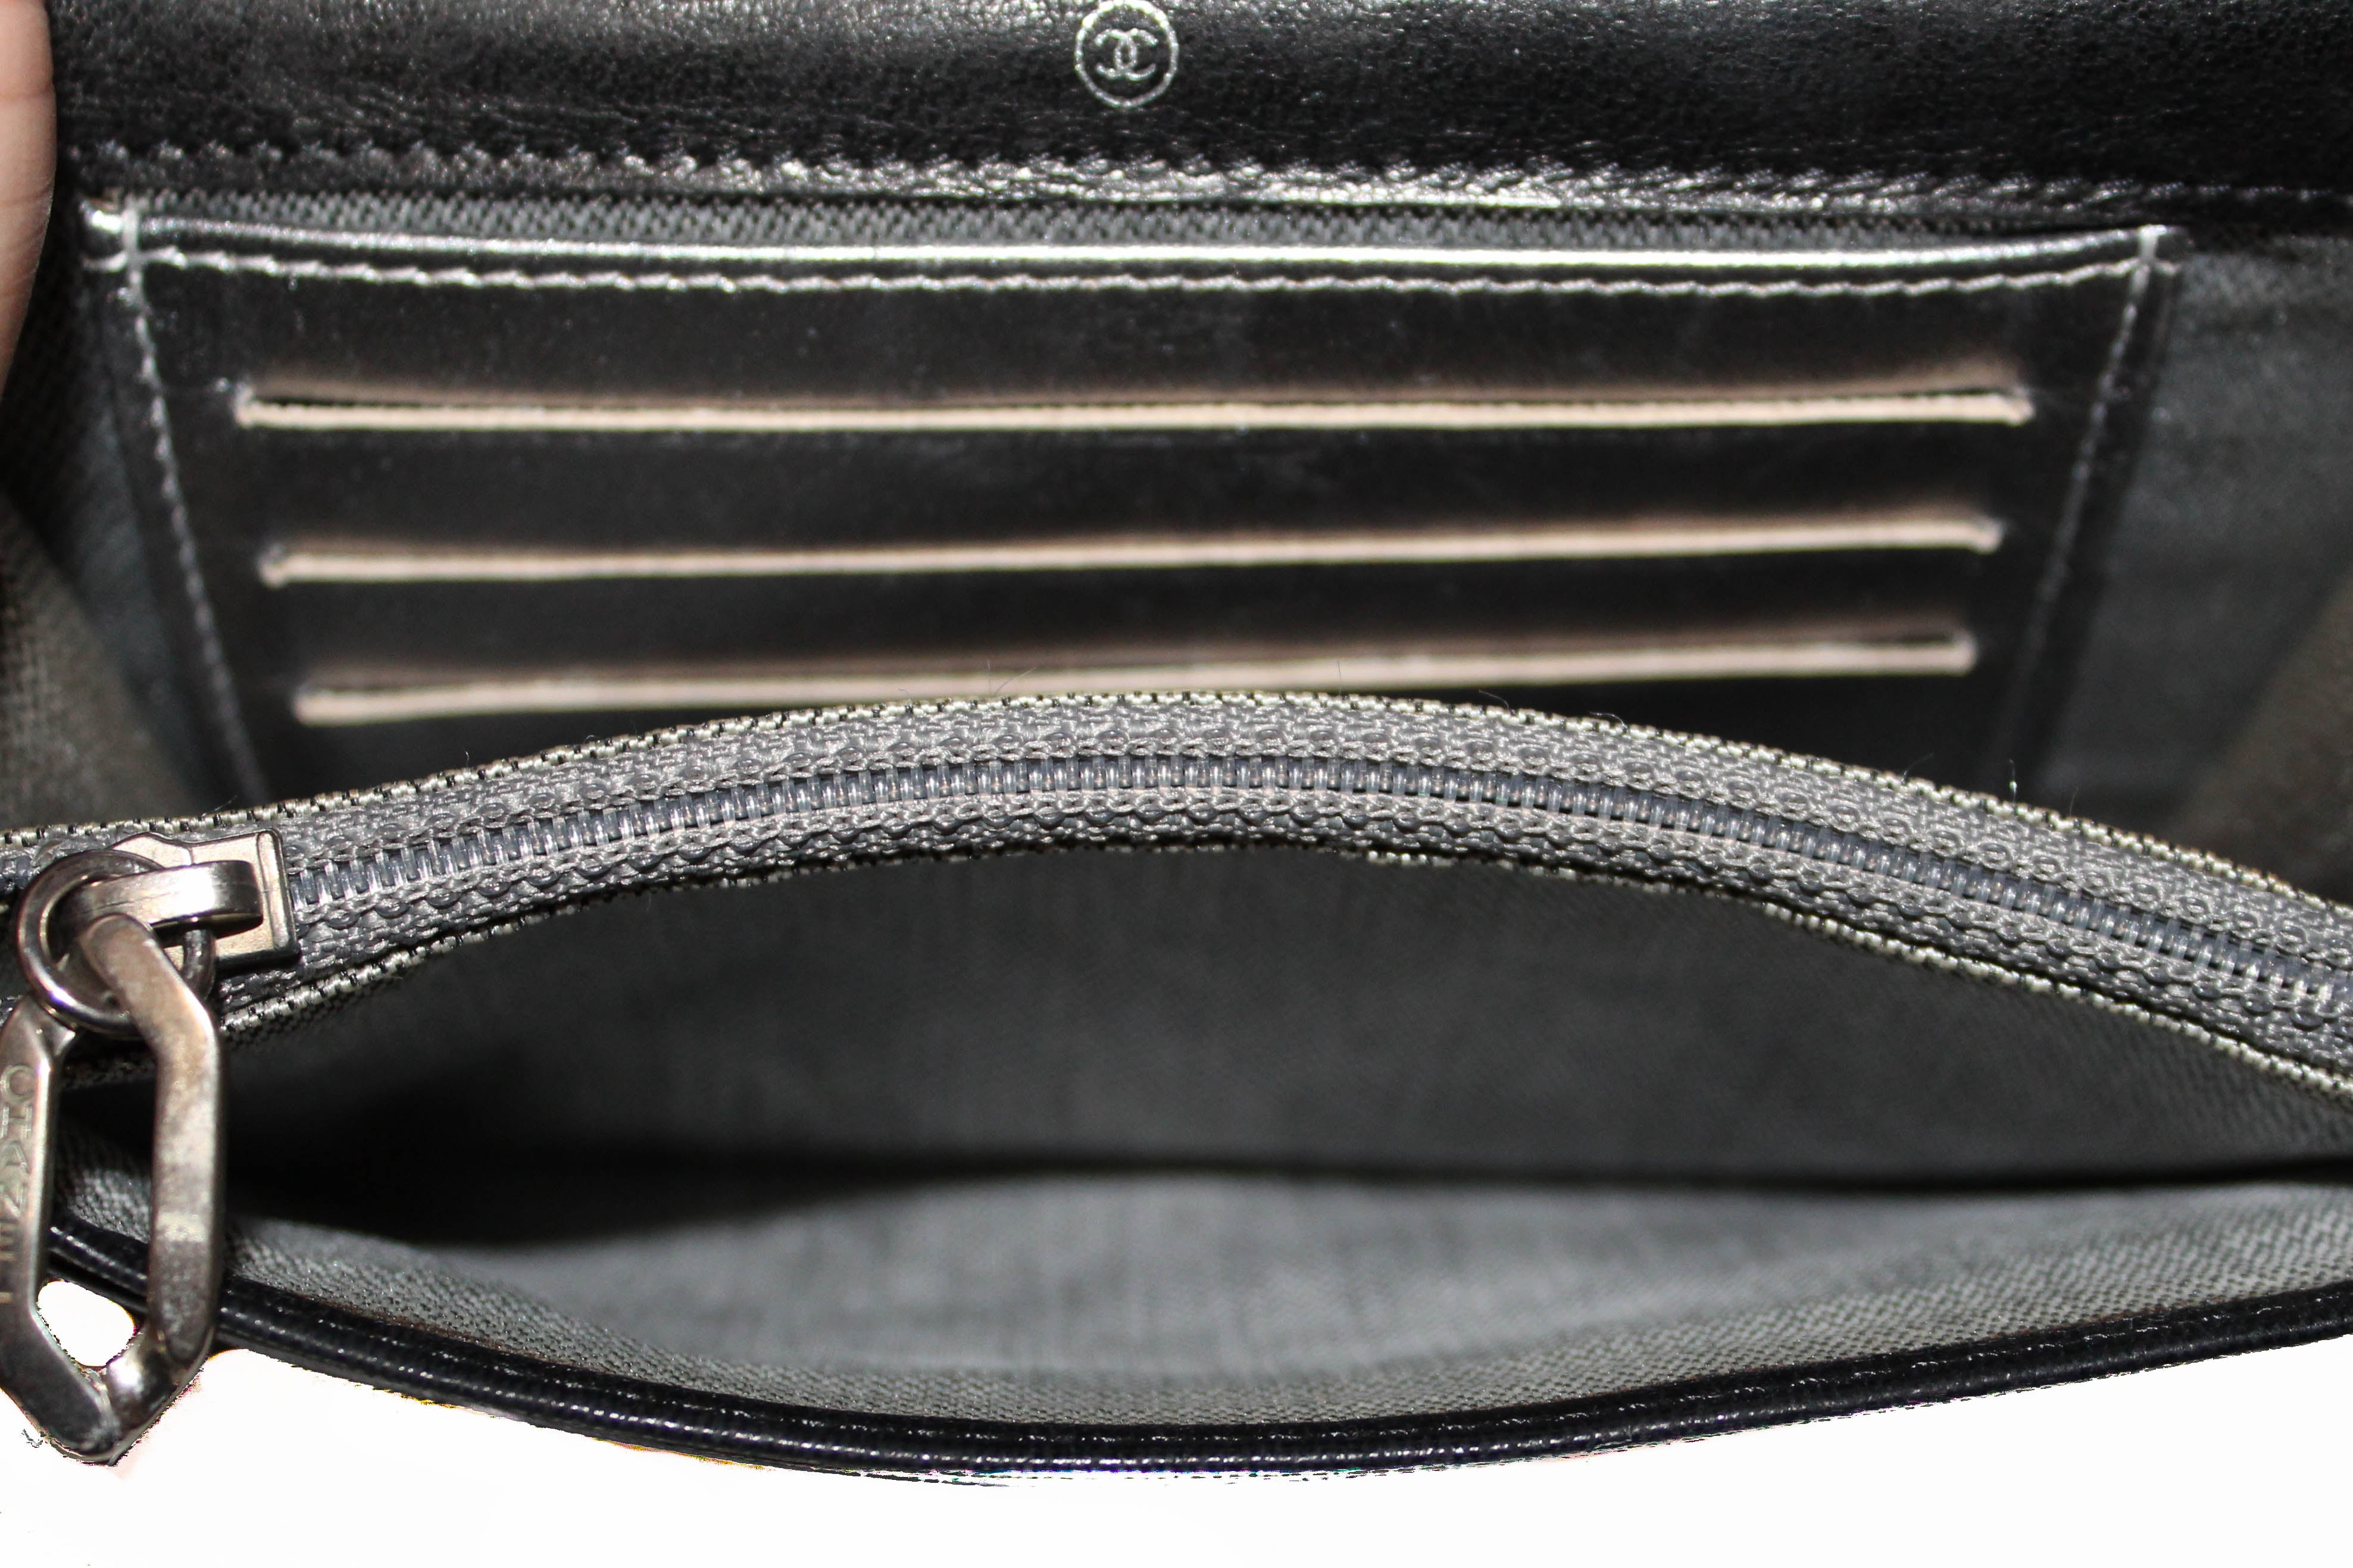 Authentic Chanel Black Lambskin Leather Compact Wallet